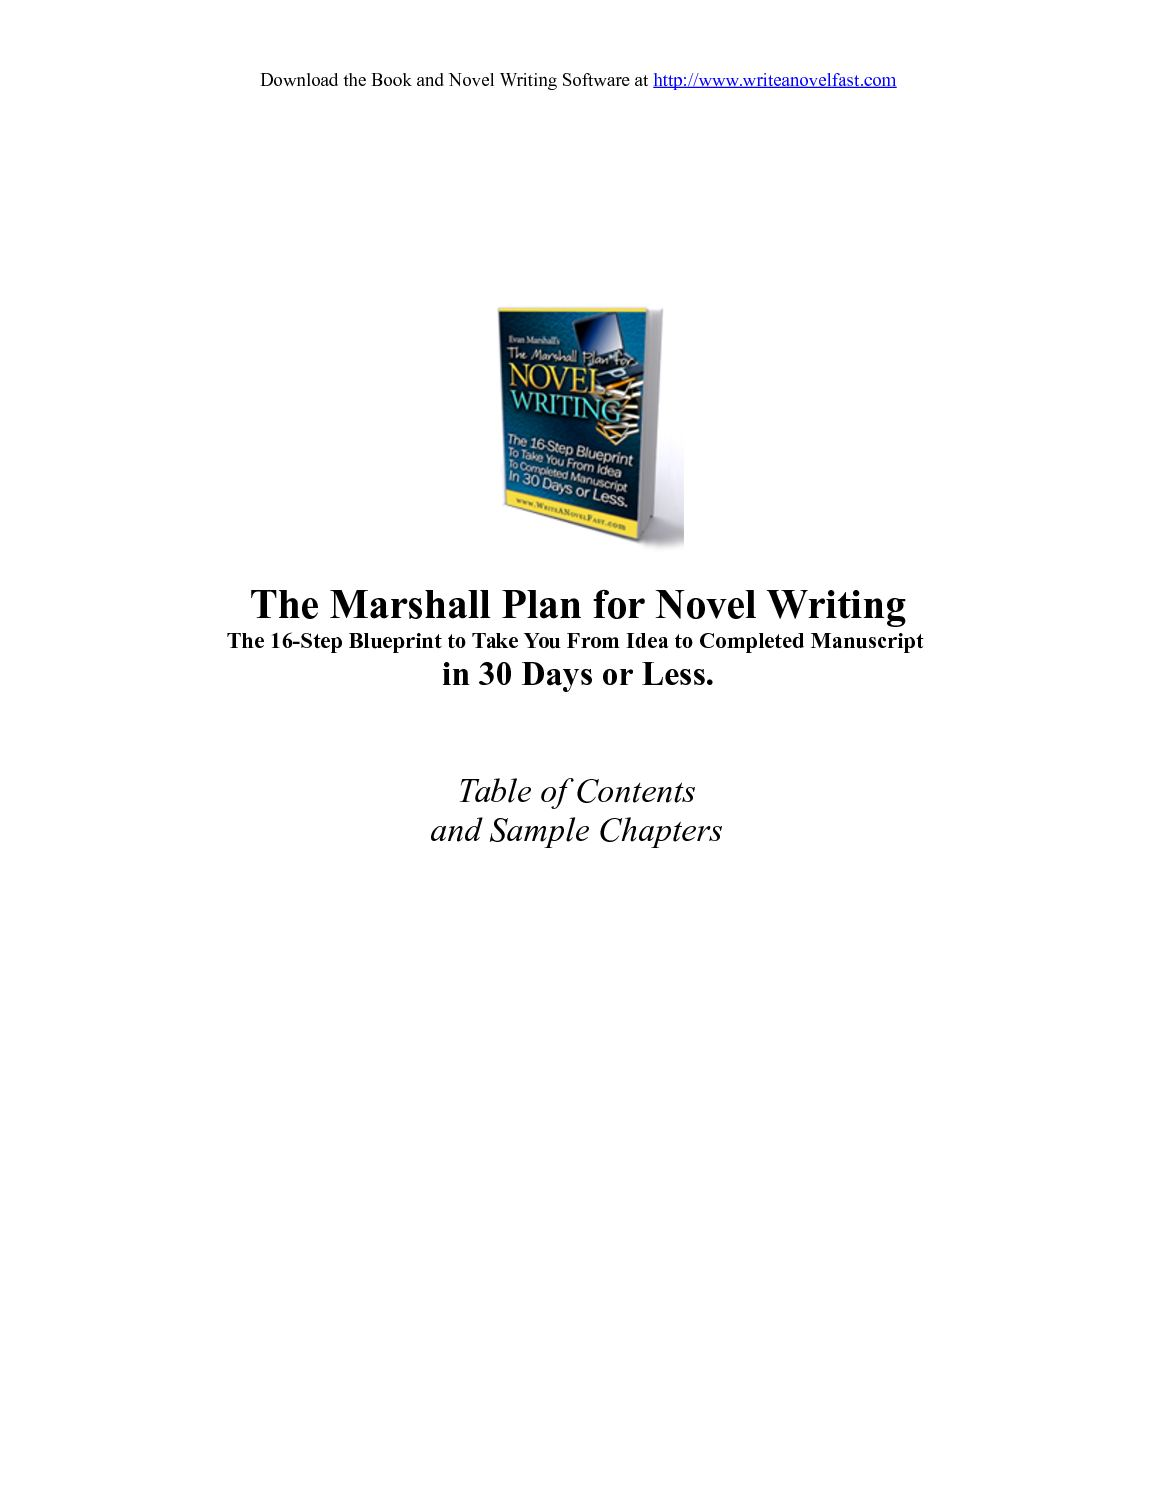 software for writing a novel This novel writing software is for people who have never written before with the click of a button it plots your novel using the proprietary algorithm in evan marshall's novel writing guide, the marshall plan® for novel writing (writer's digest, 1998.